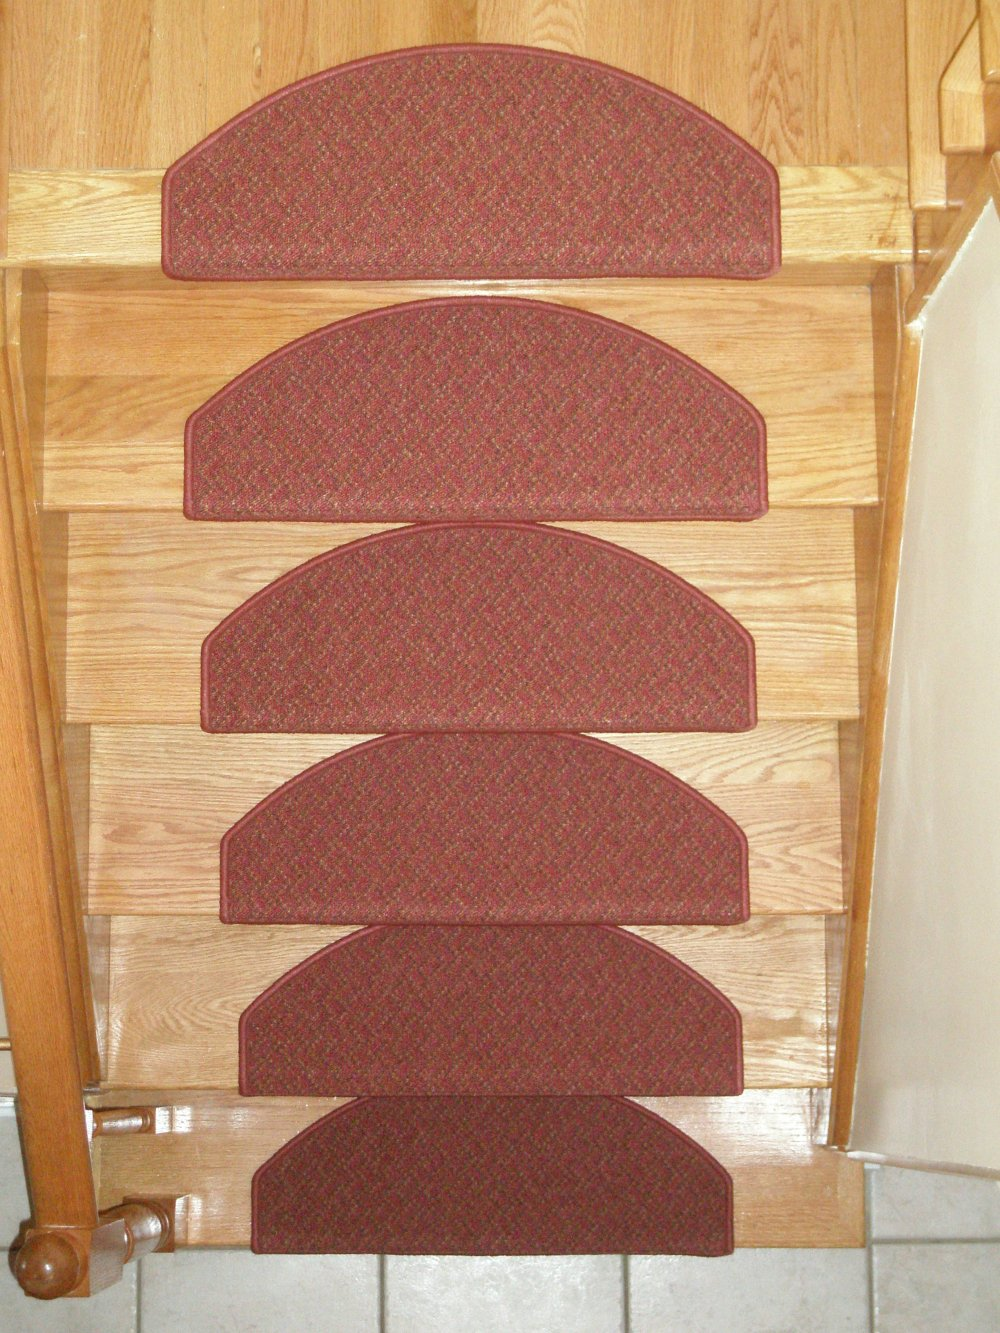 Carpet Stair Treads for Dogs, Pet's friendly Stair Mats ...